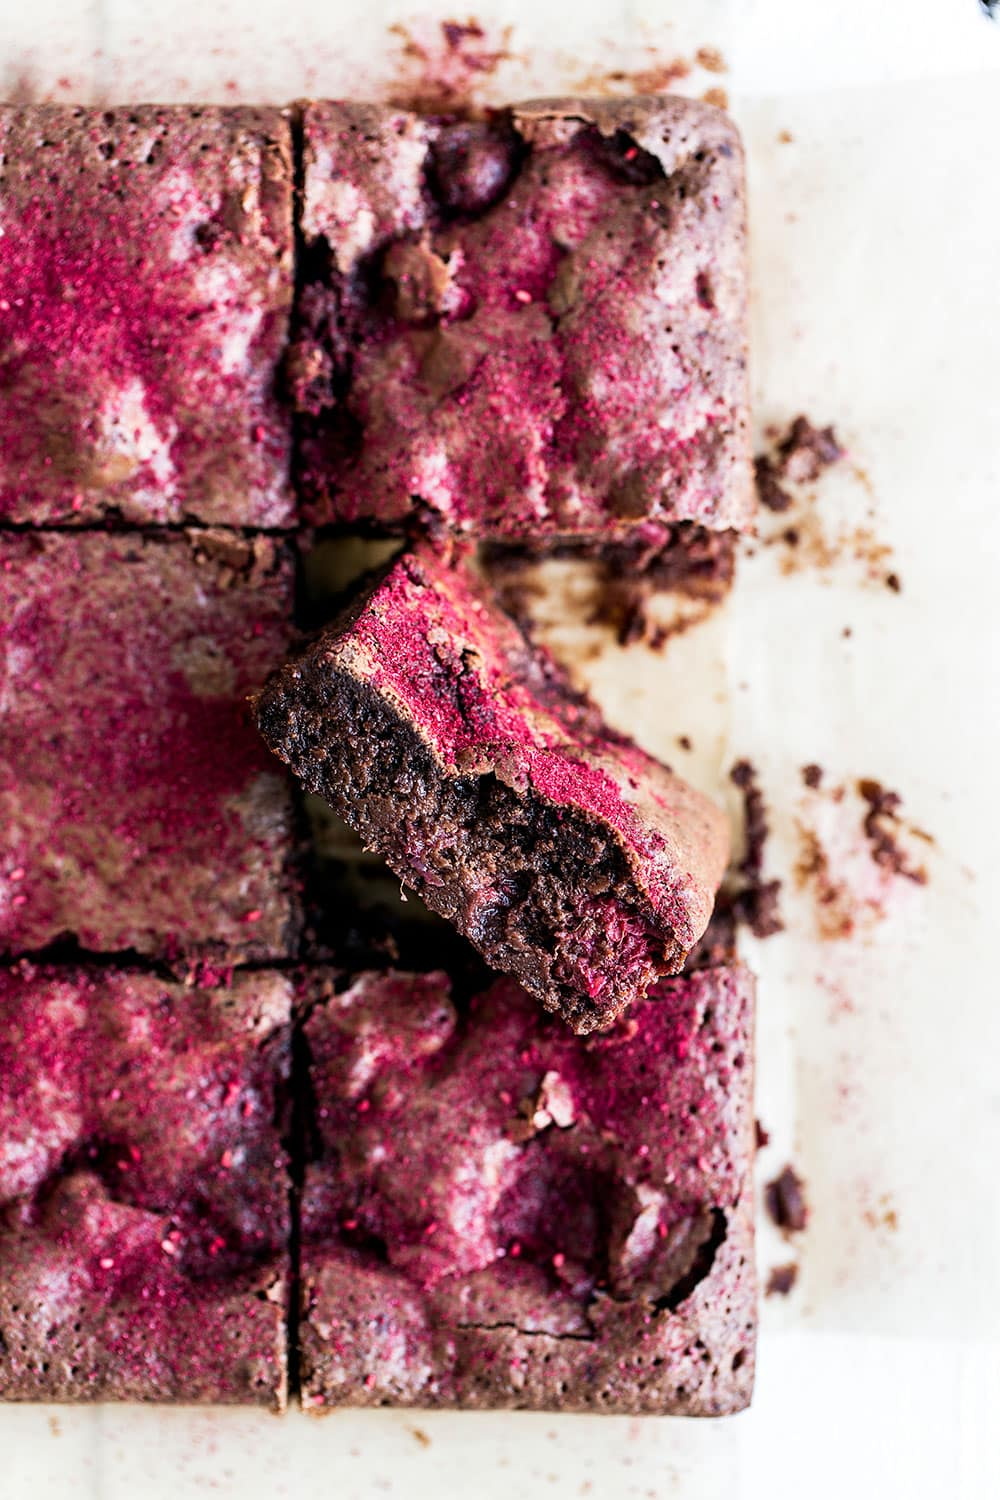 Chocolate raspberry brownies are so moist and fudgy - my family LOVED these!